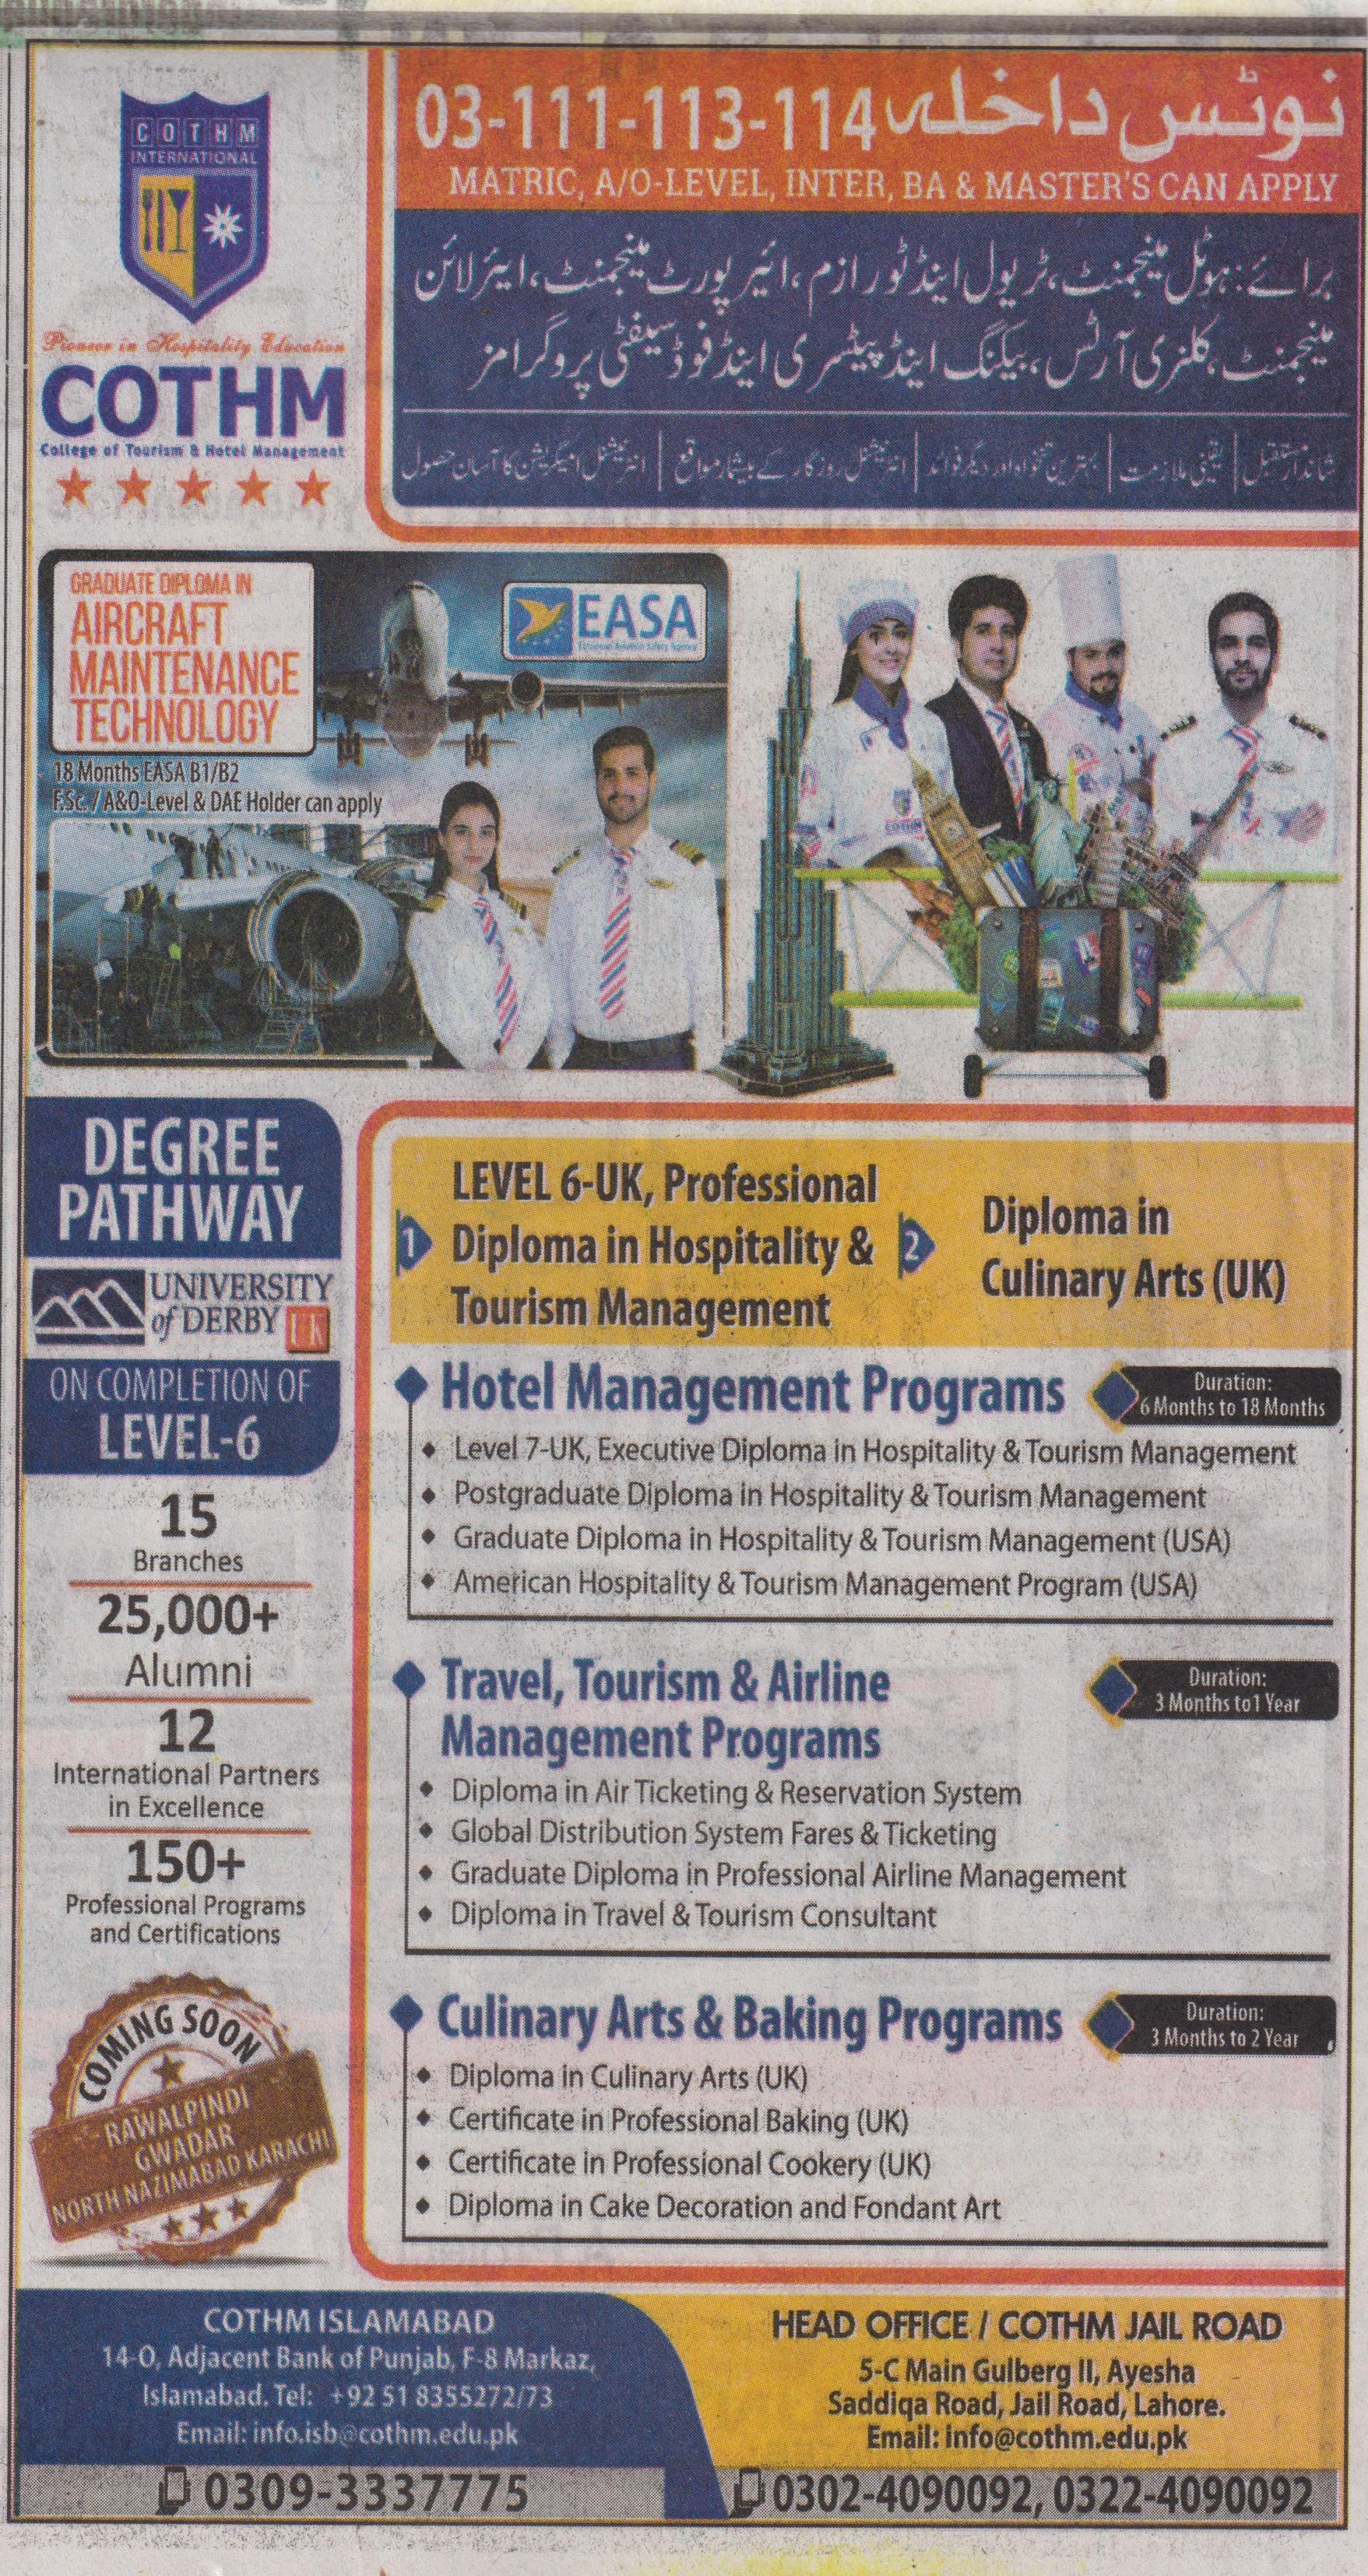 Cothm Islamabad Offering Professional Courses